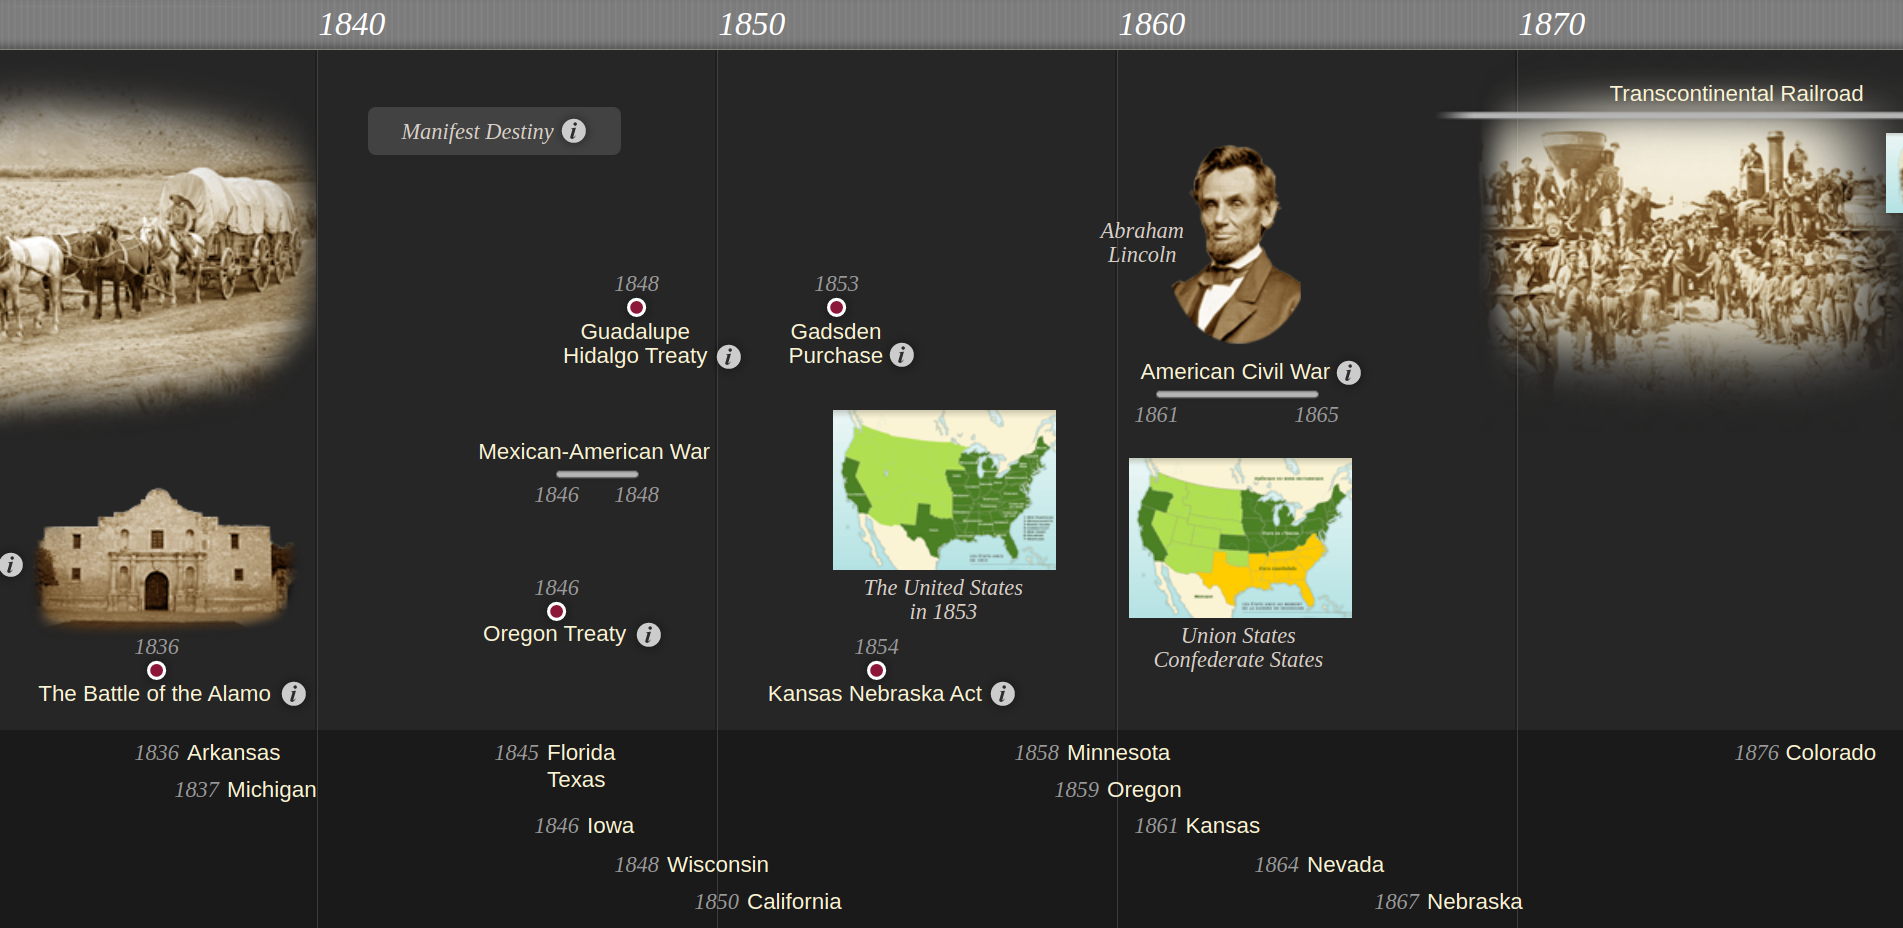 Territorial history of the United States